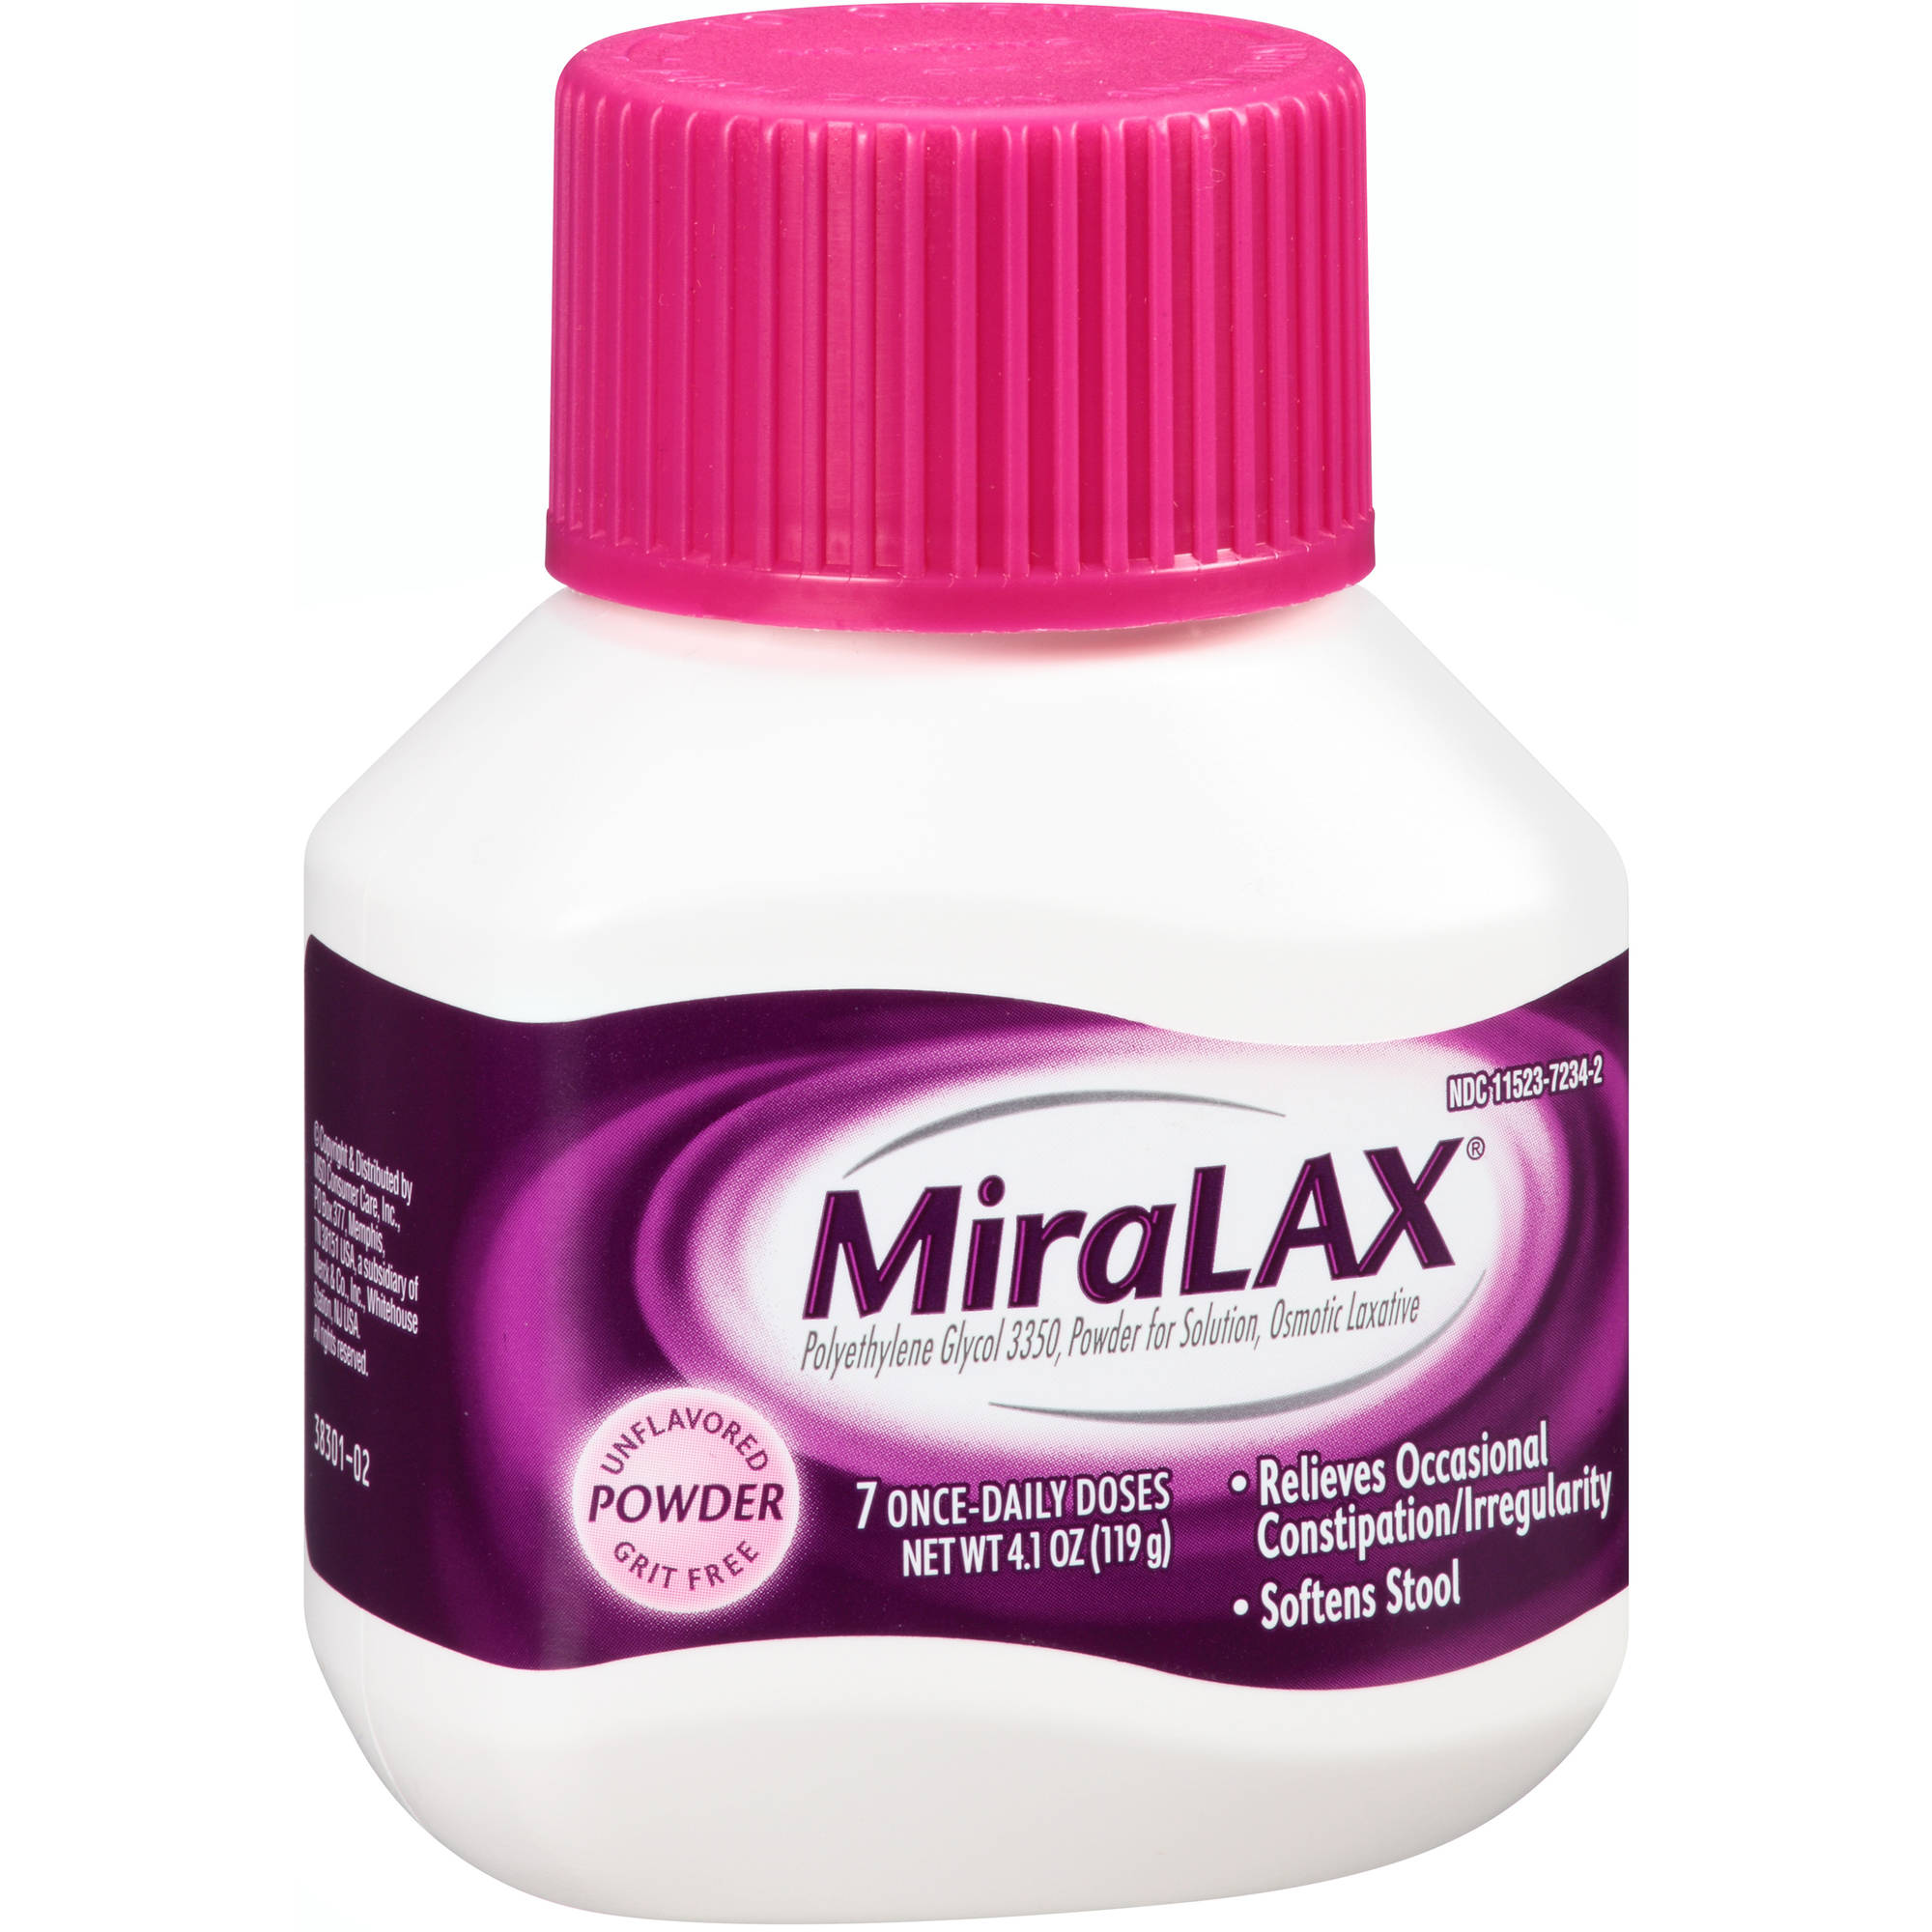 MiraLAX Powder Laxative, 4.1 oz